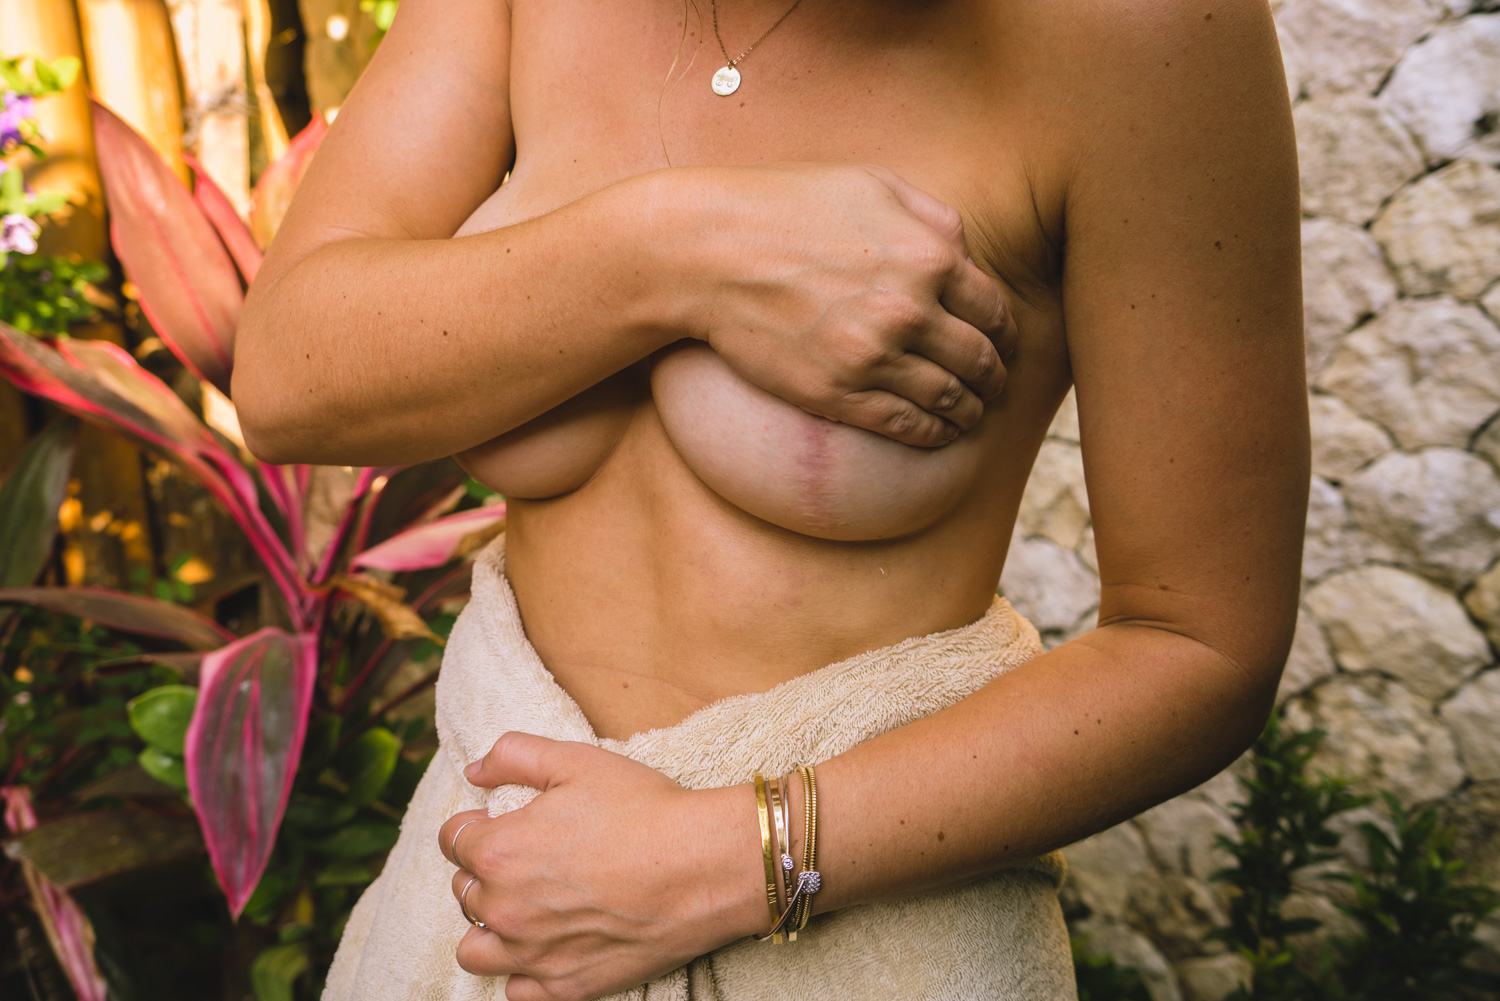 intimacy after double mastectomy surgery